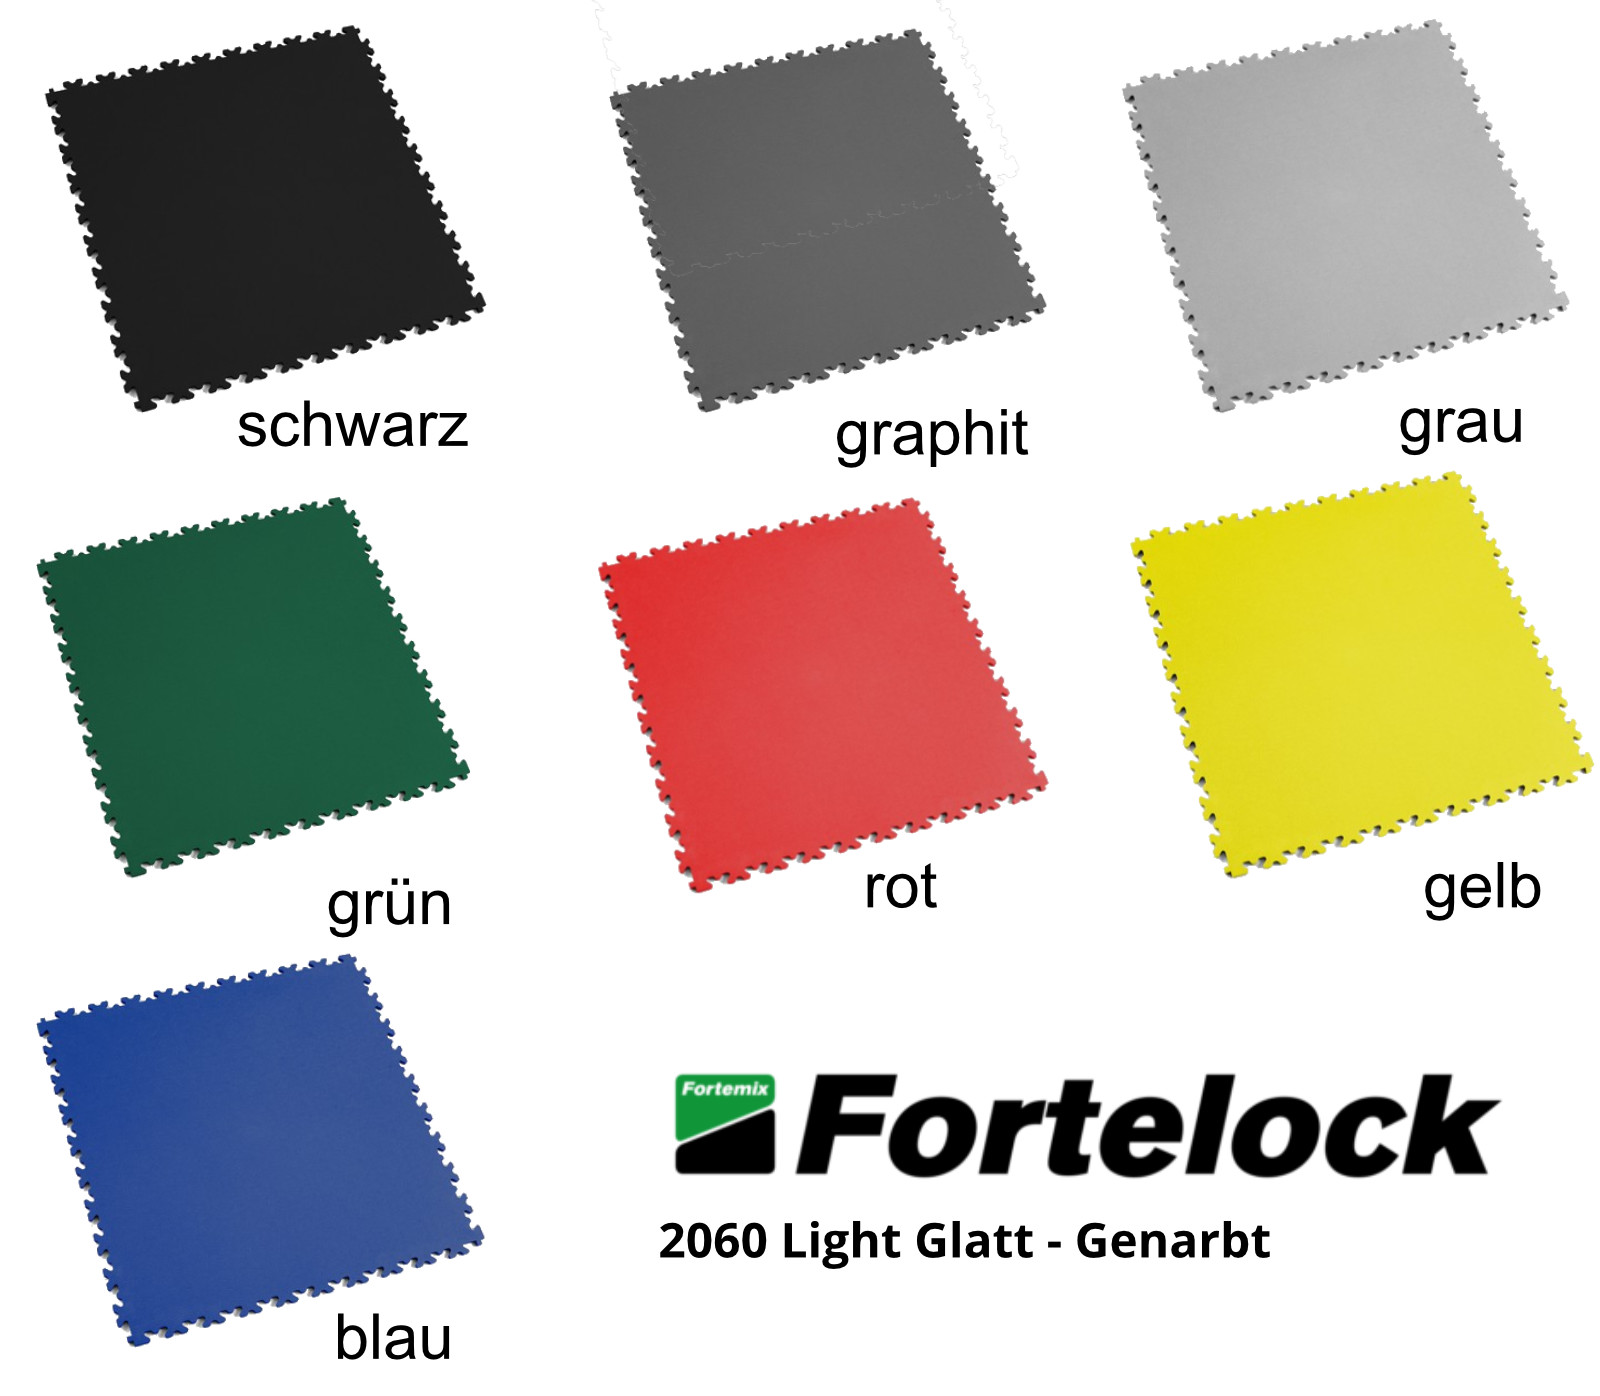 fortelock-light-2060-glatt-genarbt